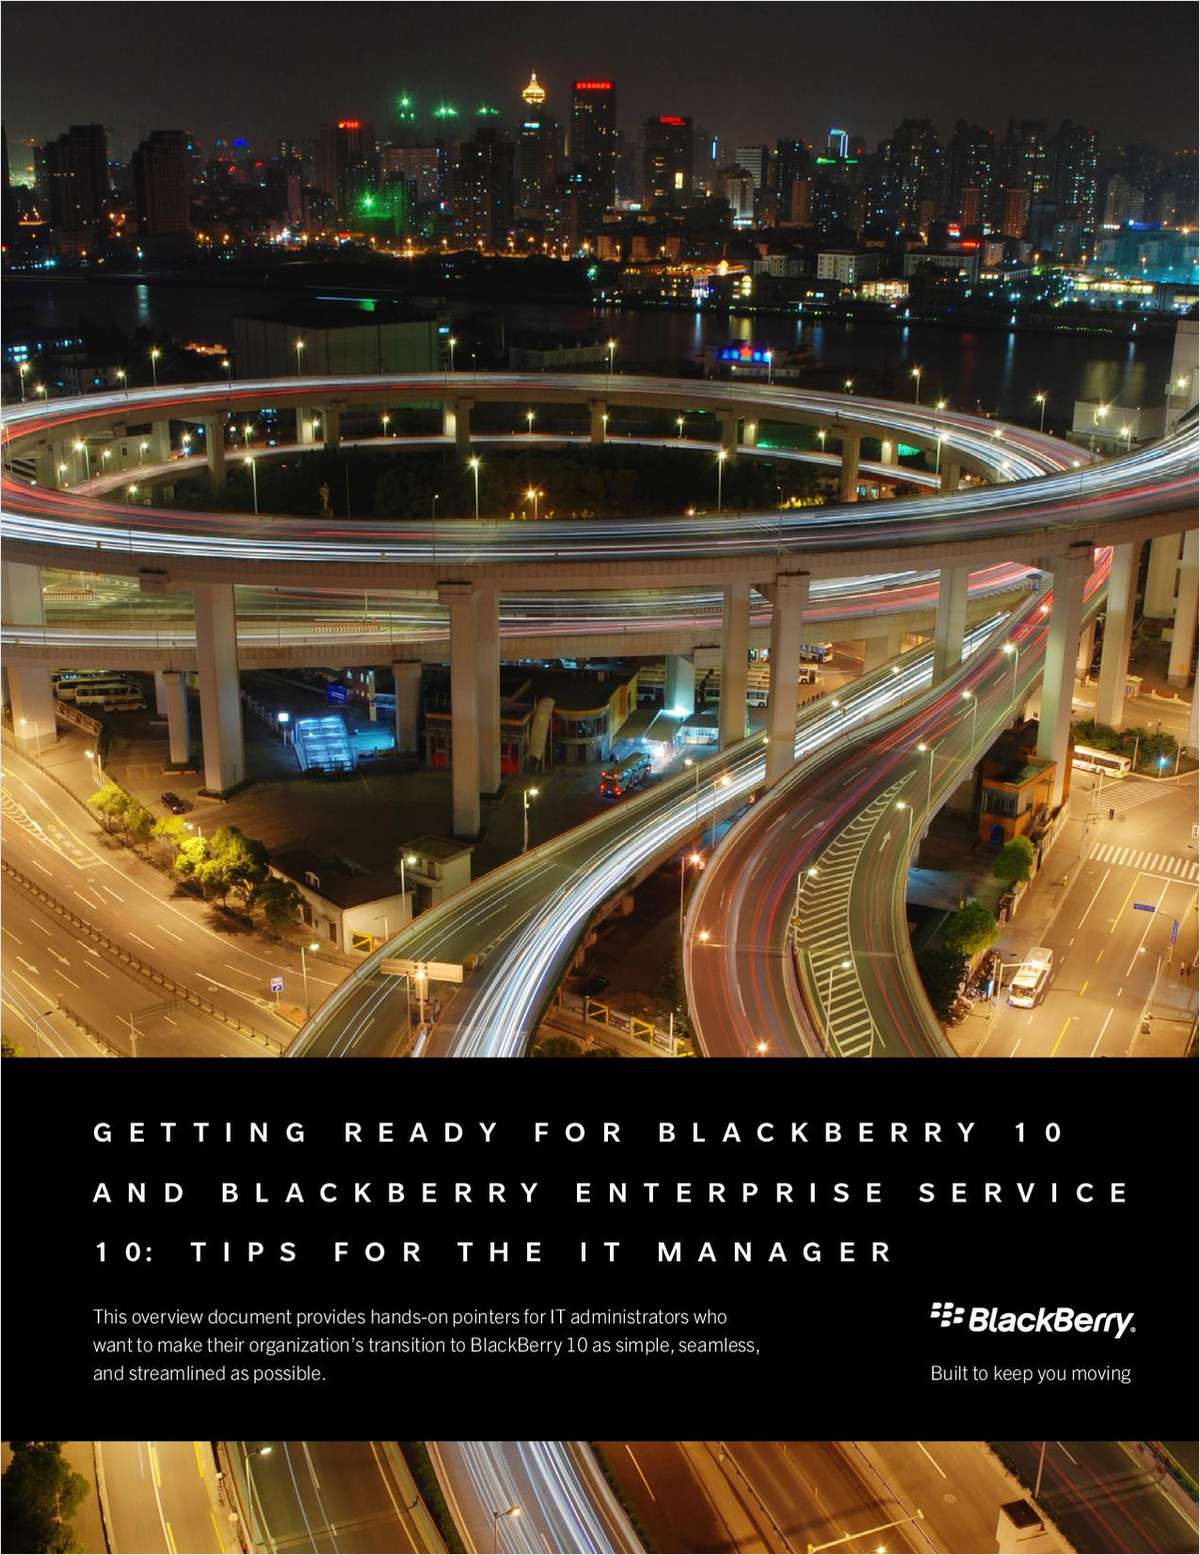 Getting Ready for BlackBerry 10 and BlackBerry Enterprise Service 10: Tips for the IT Manager